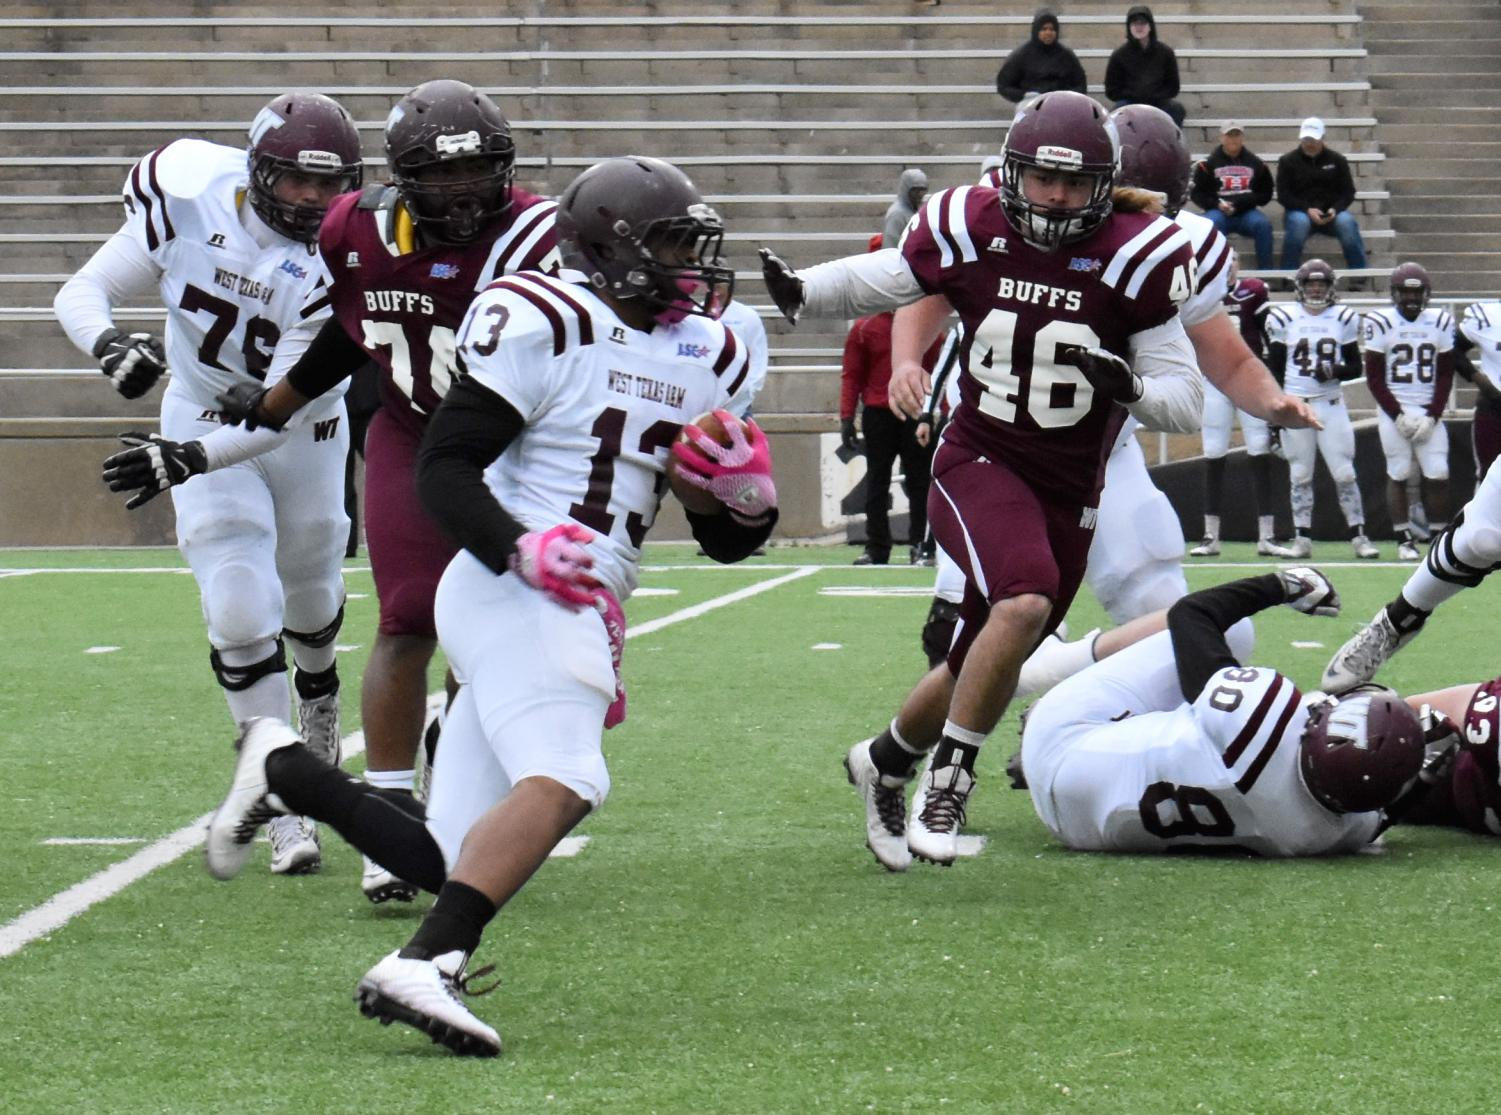 Running back Eddy Williams runs as WT defenders chase down Williams during the annual Maroon and White spring game at Kimbrough Memorial Stadium on Friday, April 20.